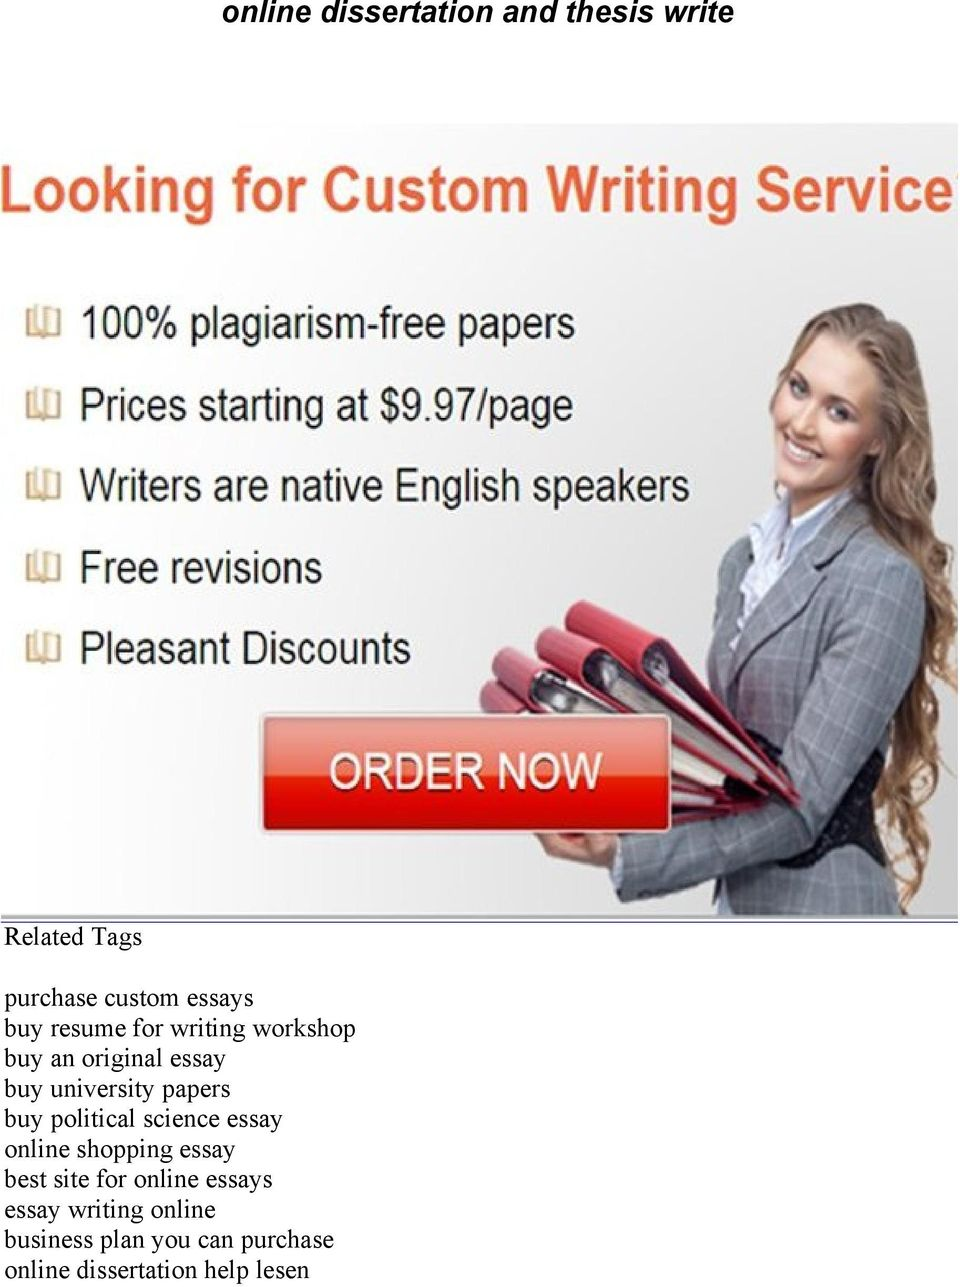 political science essay online shopping essay best site for online essays